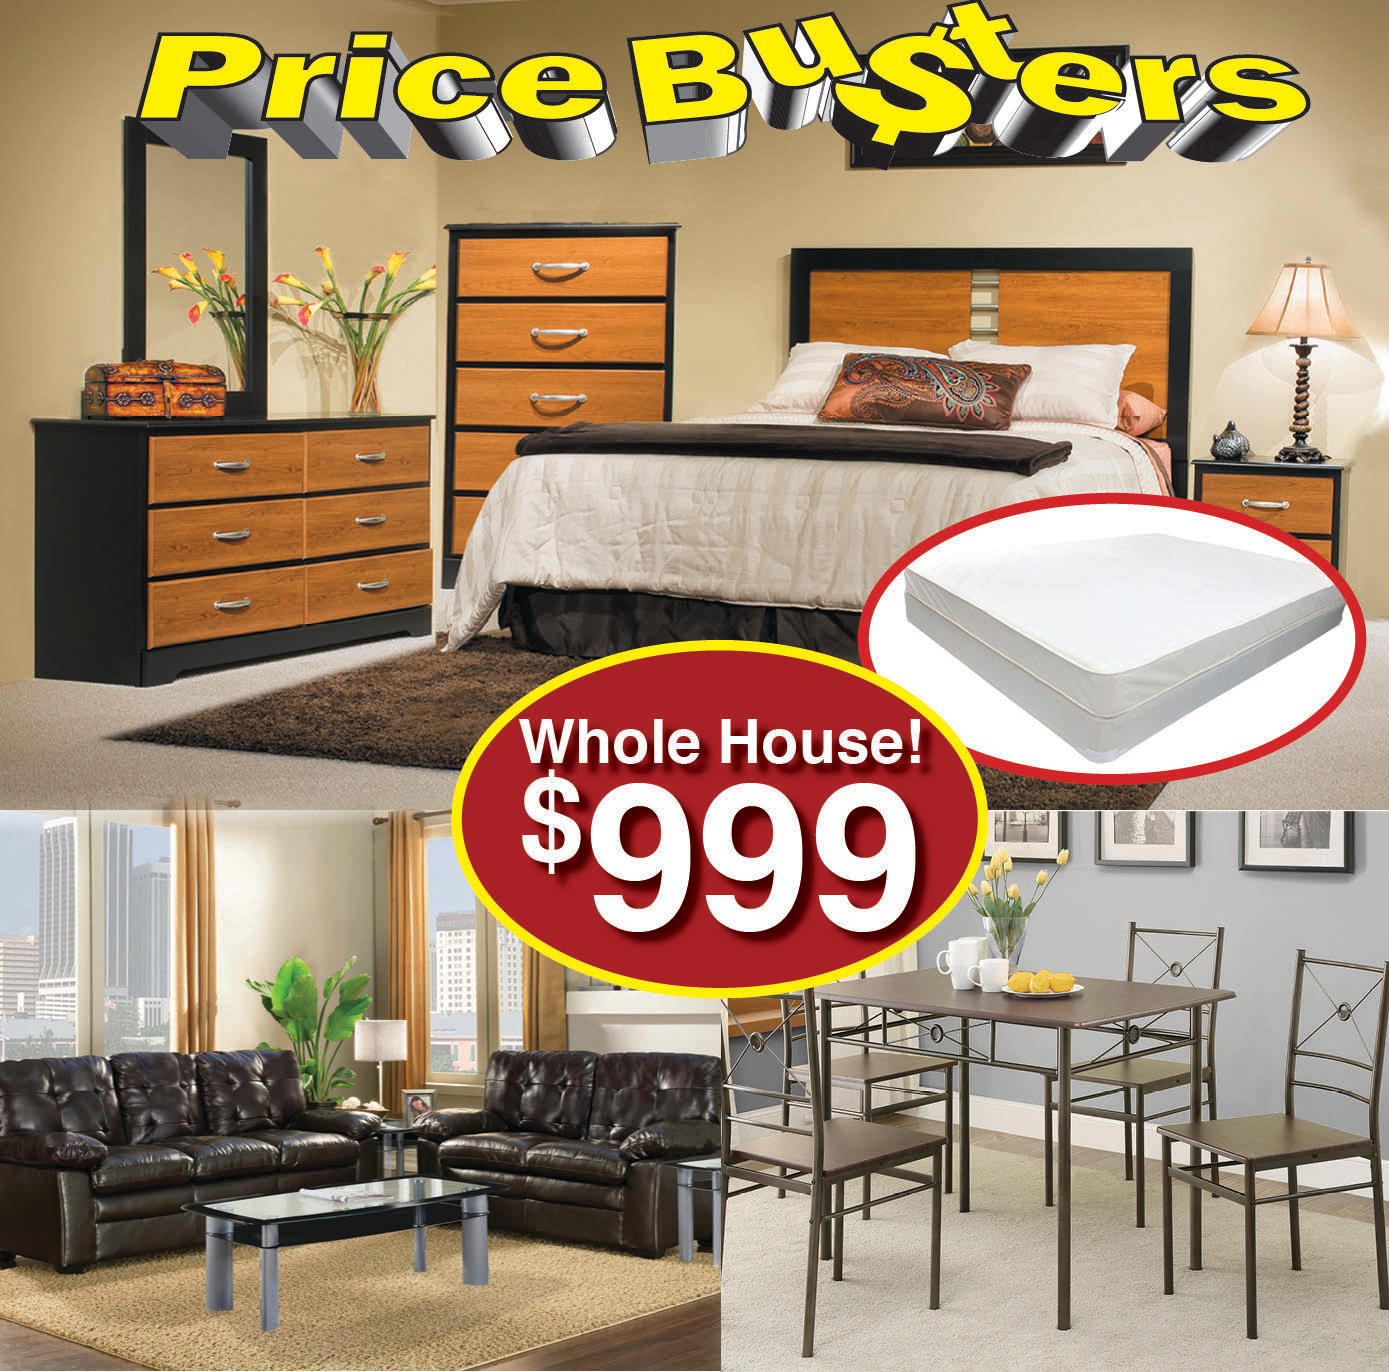 Price Busters Discount Furniture In Hyattsville Md 20785